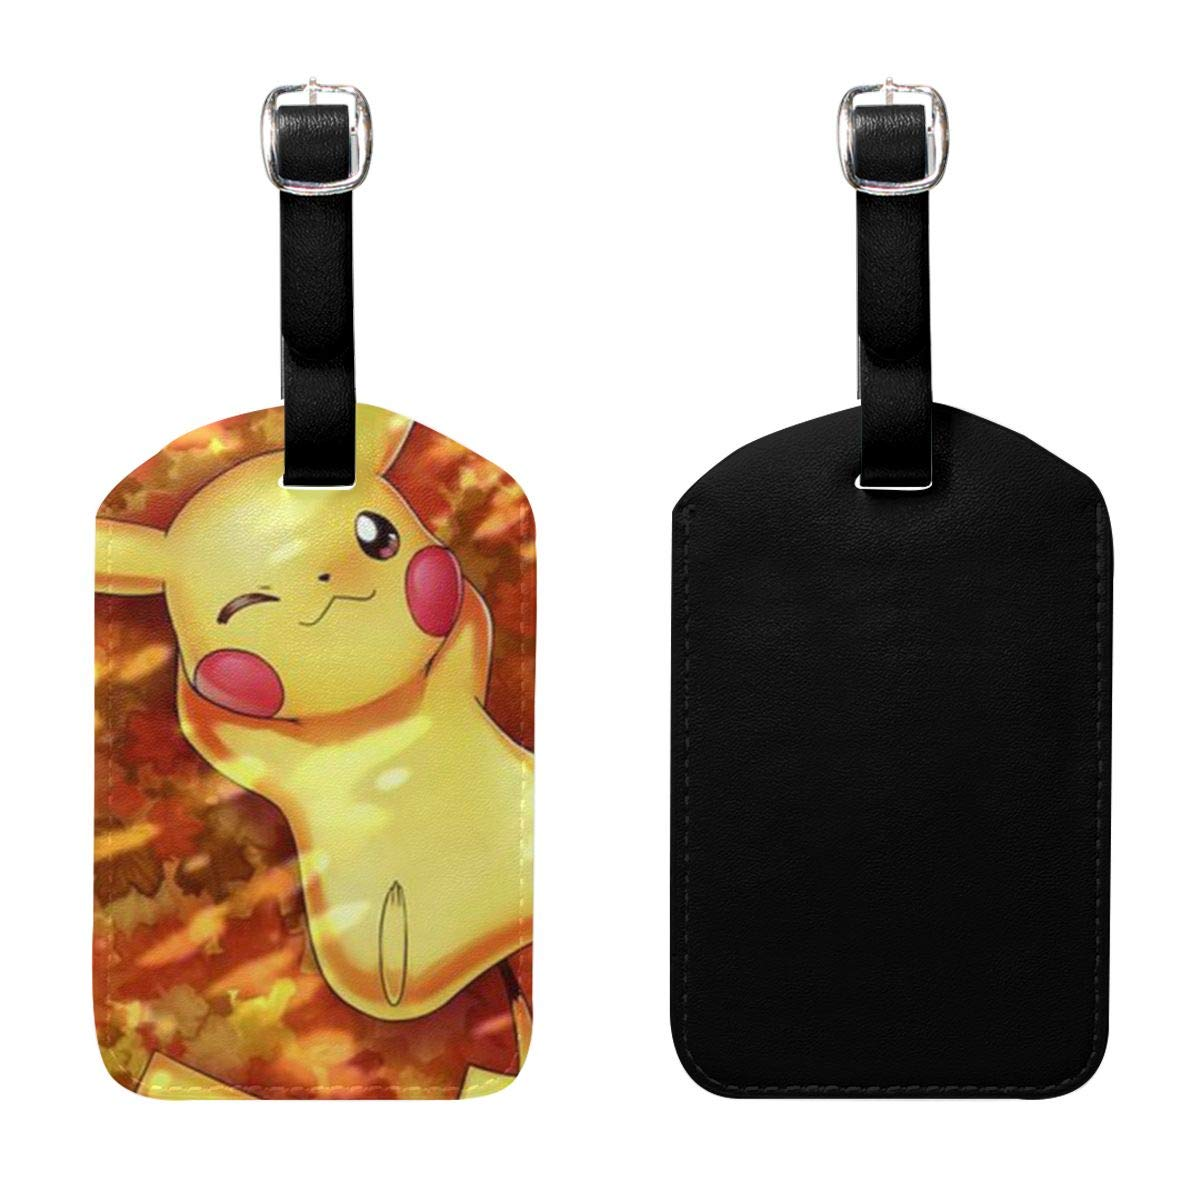 PU Leather Luggage Tags Pikachu Suitcase Labels Bag Adjustable Leather Strap Travel Accessories Set of 2